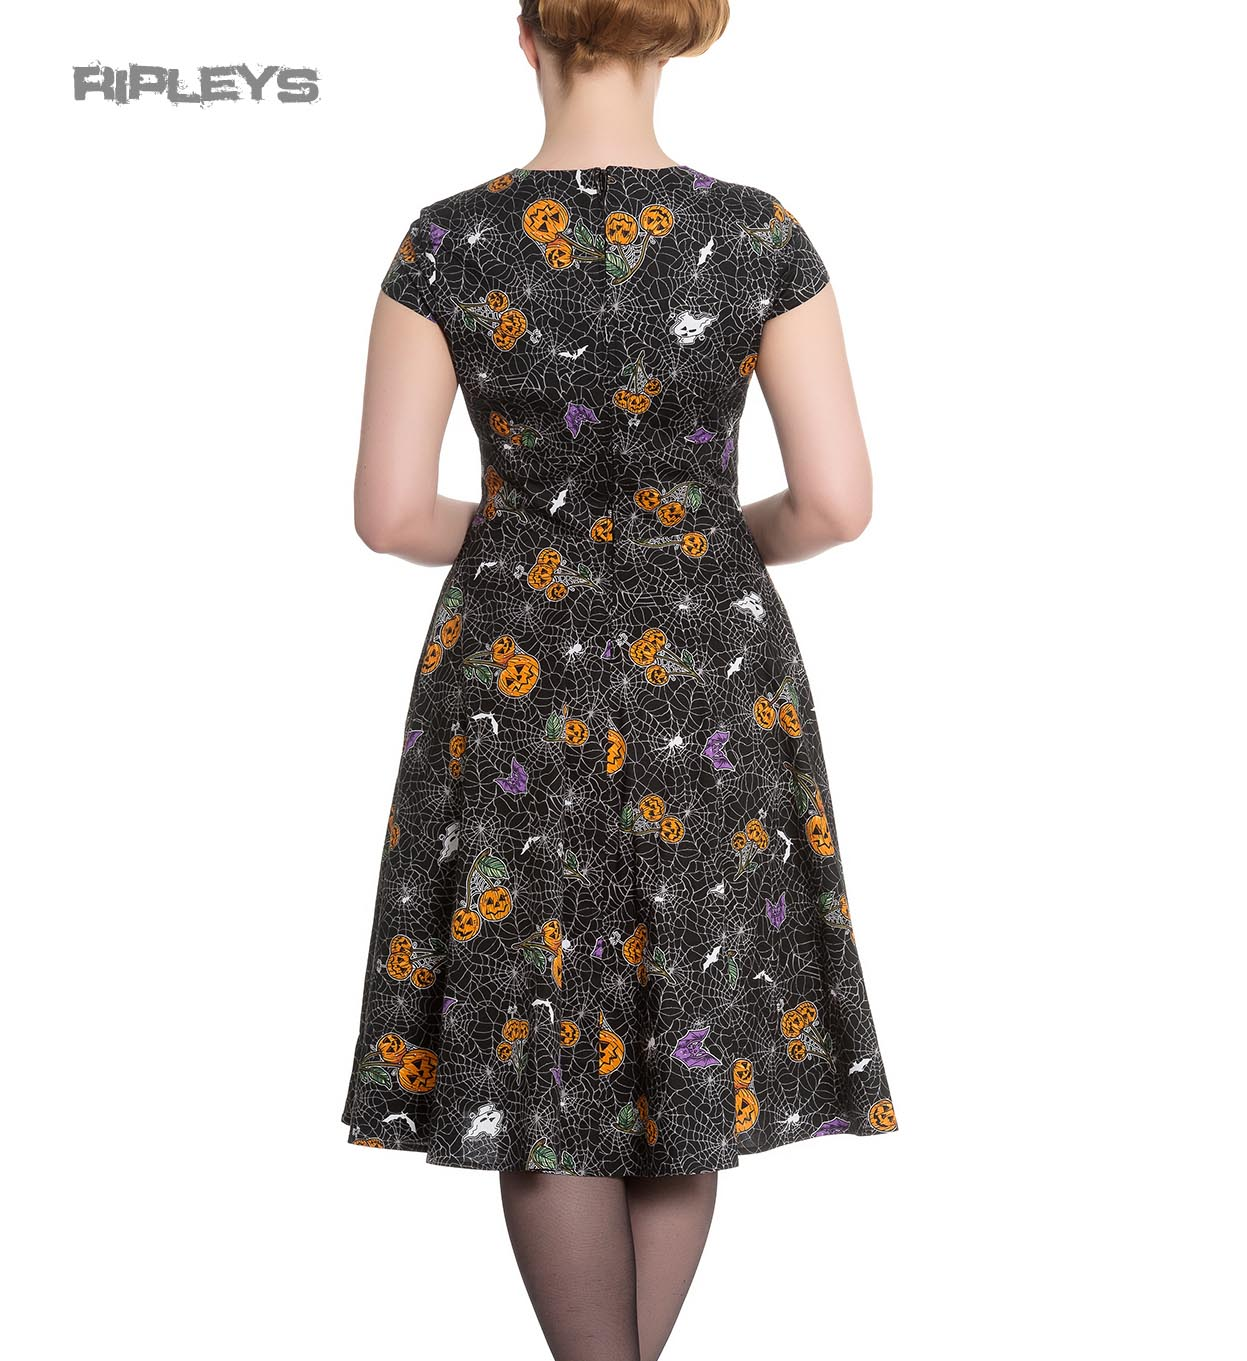 Hell-Bunny-Black-Pinup-50s-Goth-Webs-Dress-HARLOW-Halloween-All-Sizes thumbnail 20